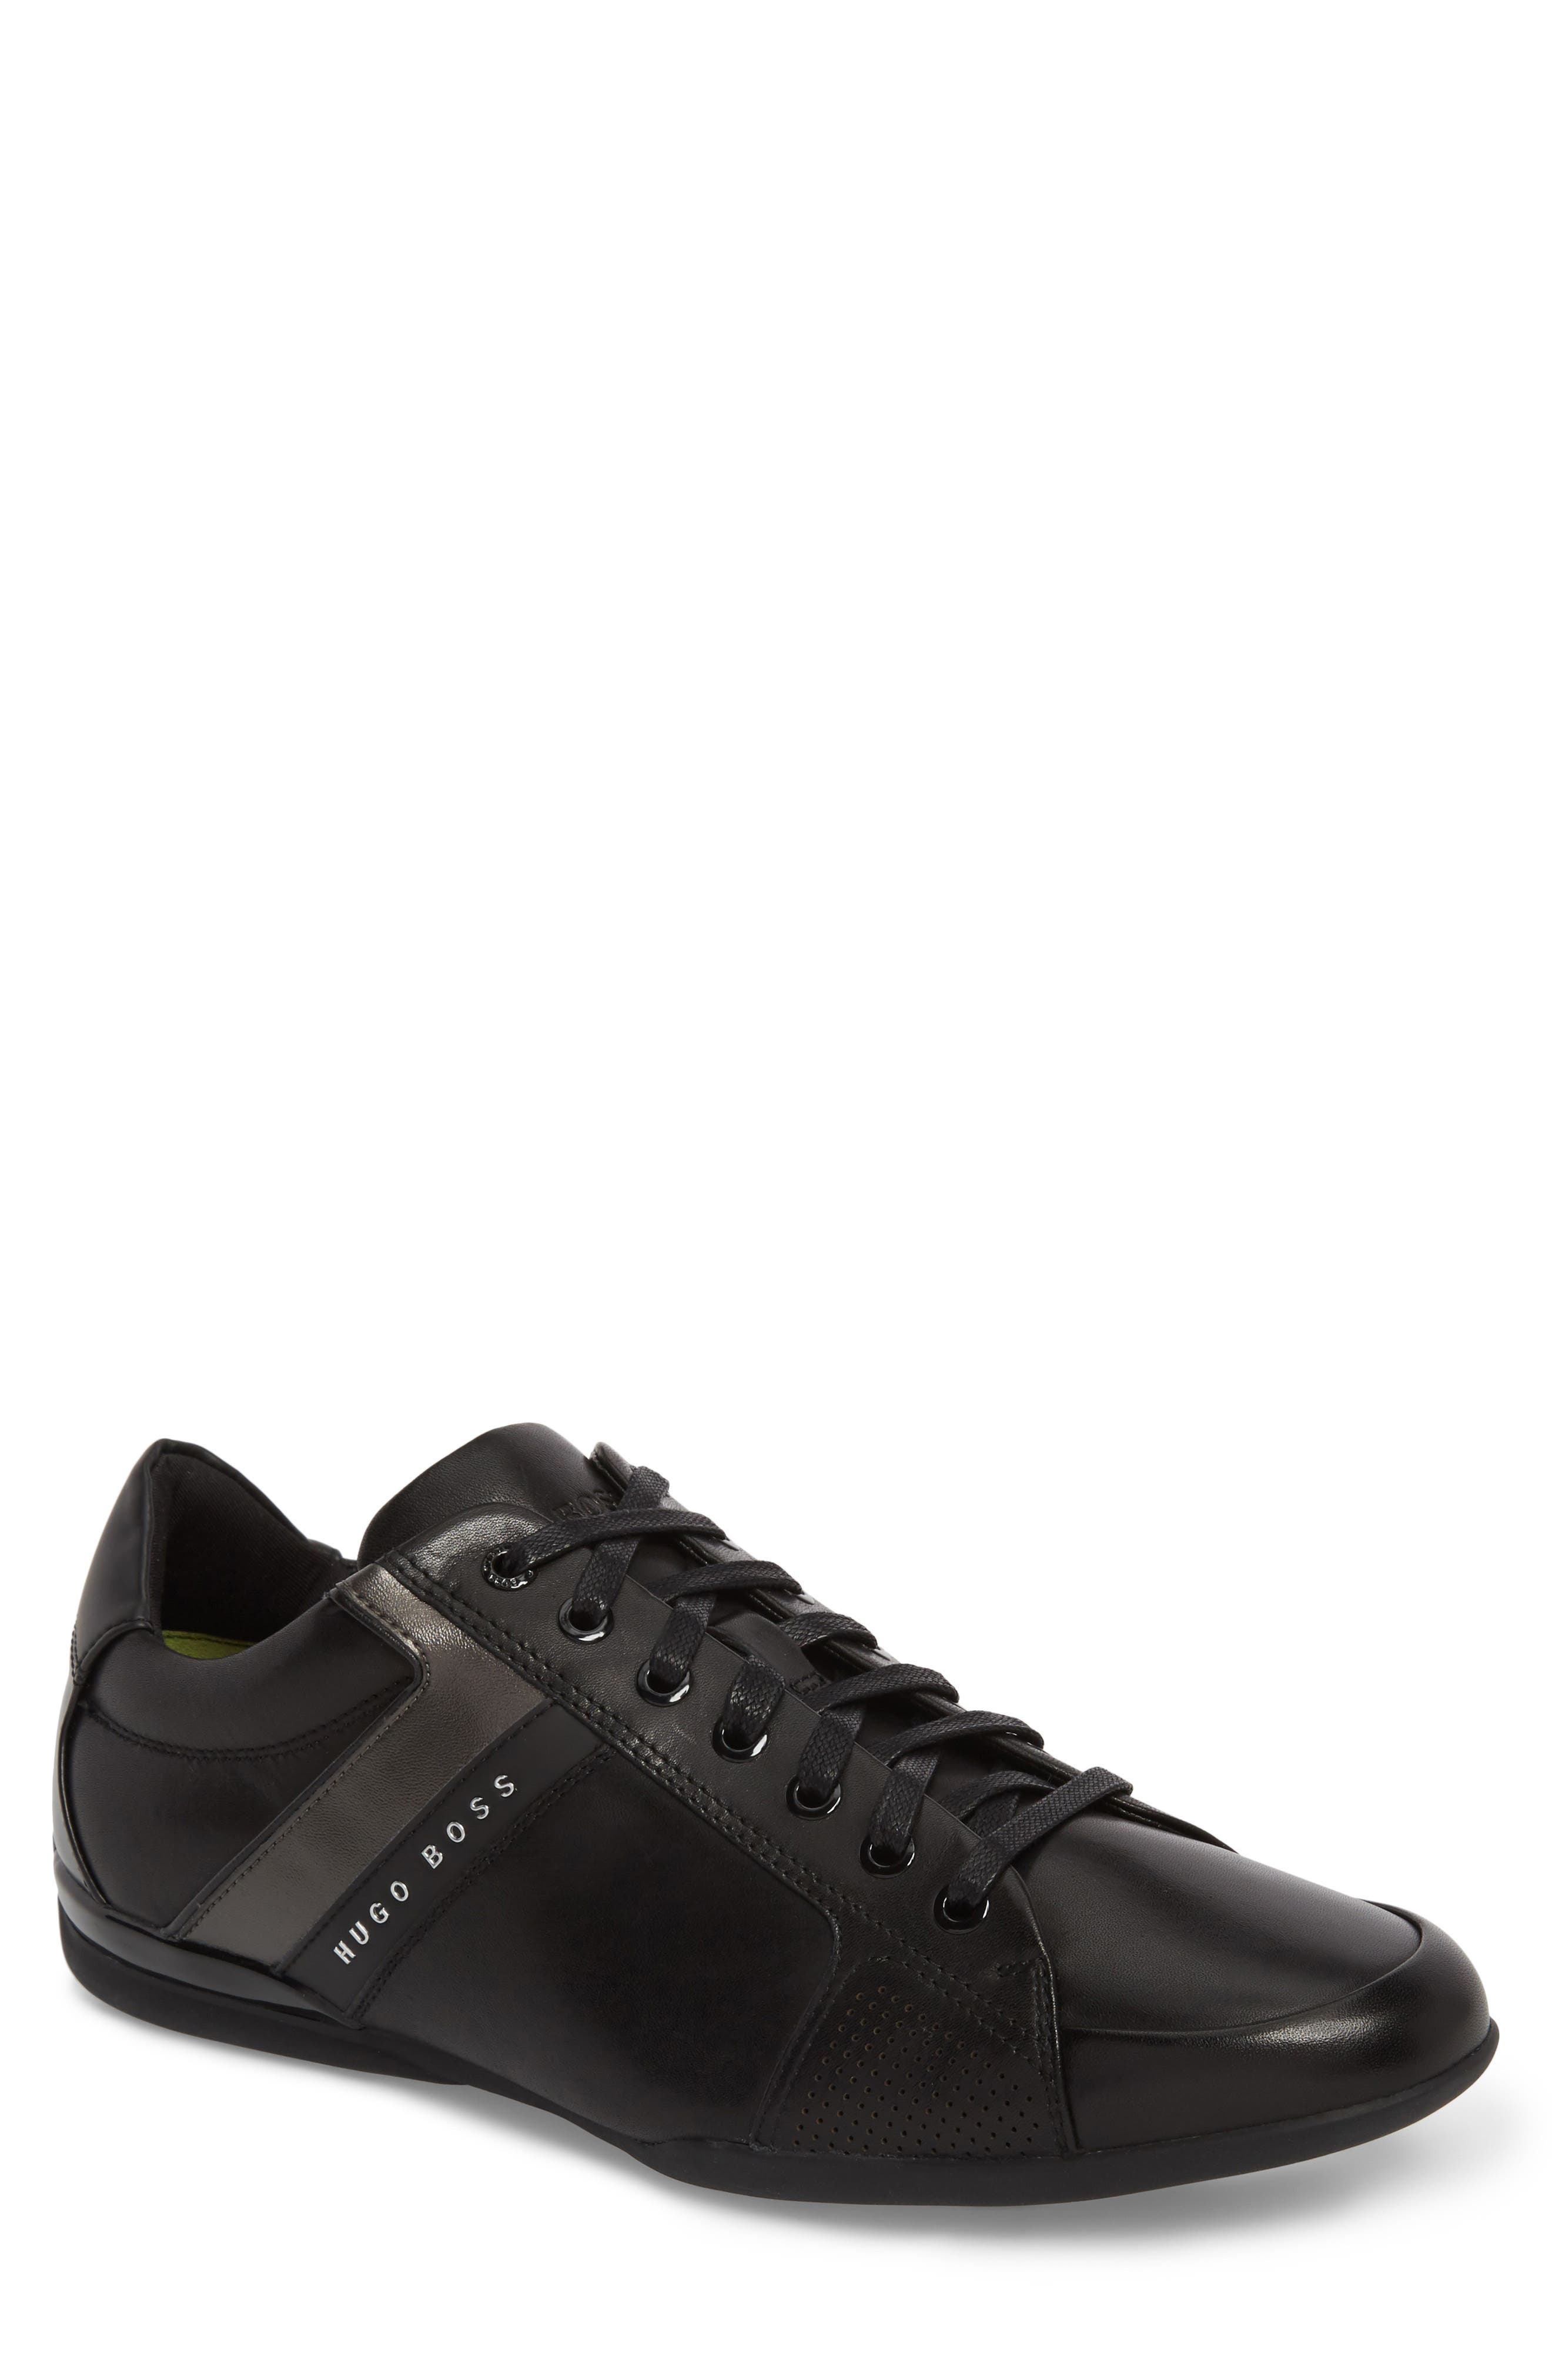 Space Lowp Lux Sneaker,                         Main,                         color, Black Leather